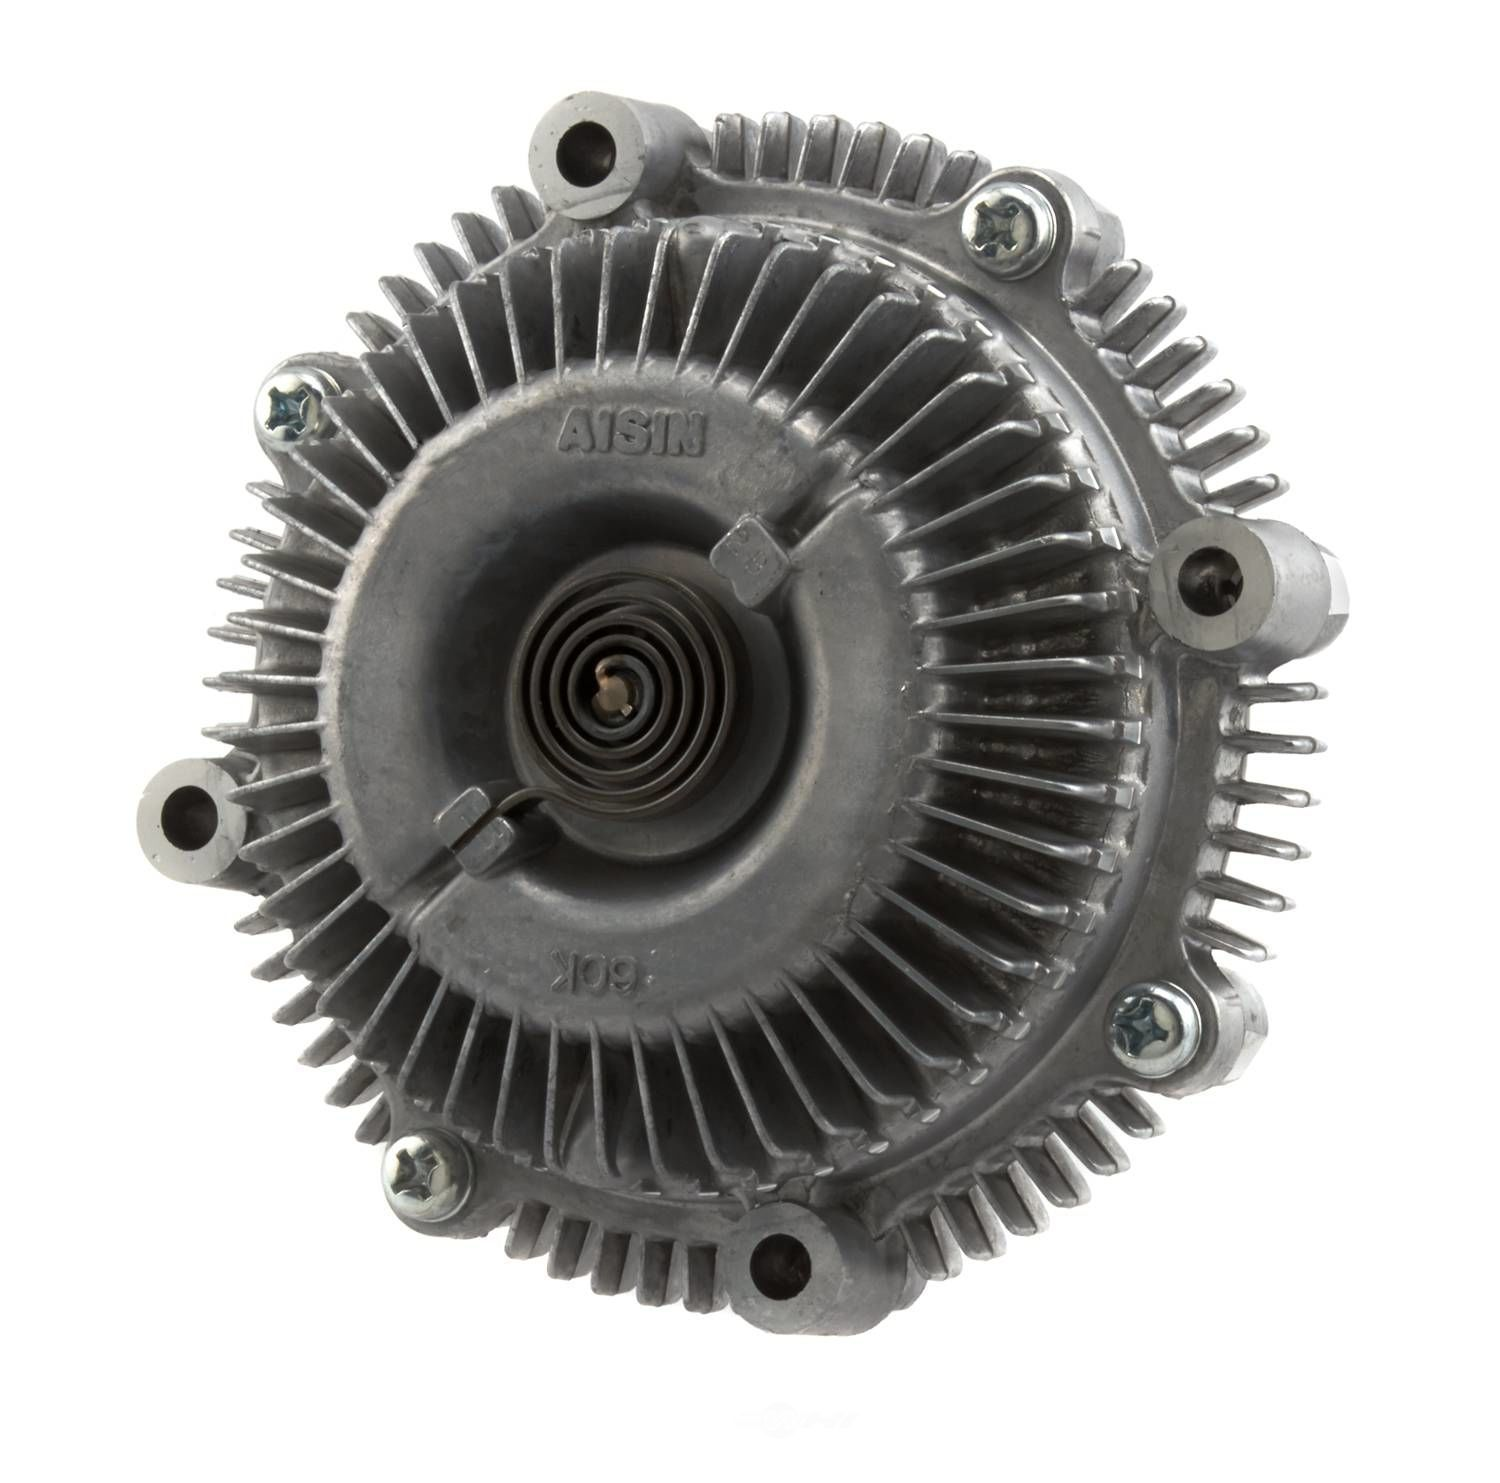 AISIN WORLD CORP. OF AMERICA - Engine Cooling Fan Clutch - AIS FCM-002